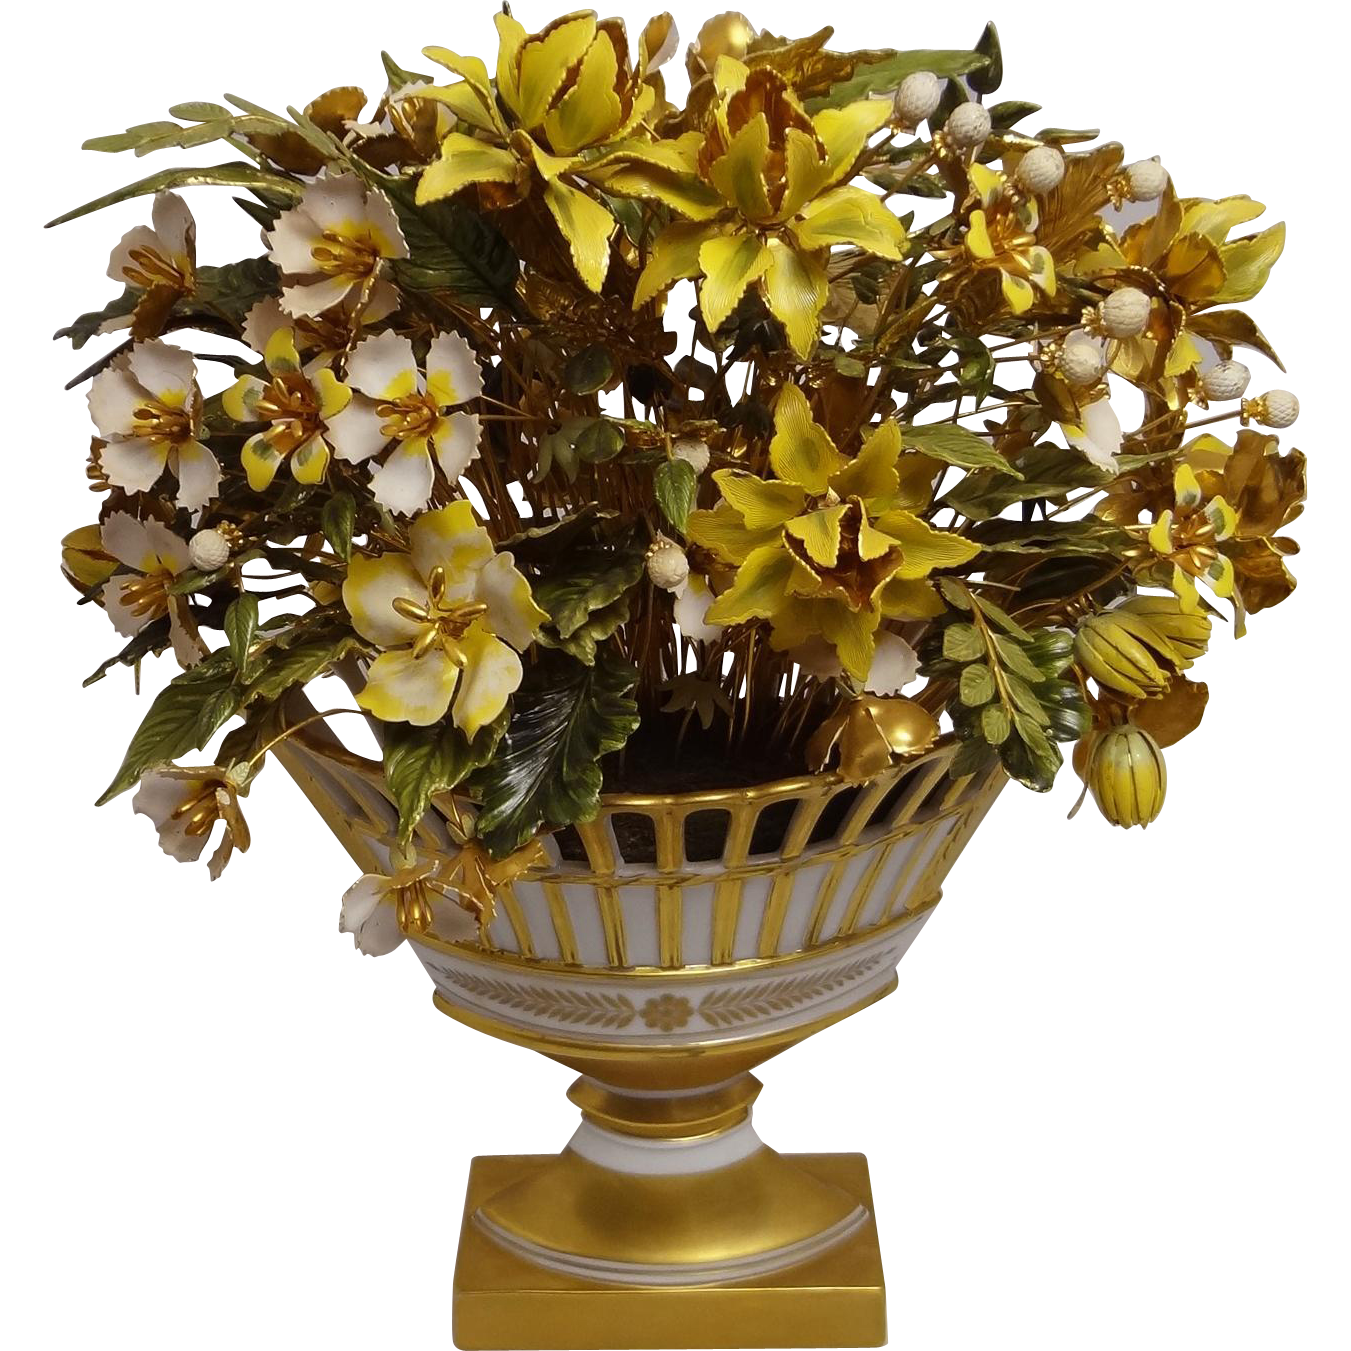 Large Centerpiece Jane Hutcheson Fleurs des Siecles Flower Arrangement for Gorham  - c. 1970's-80's, USA